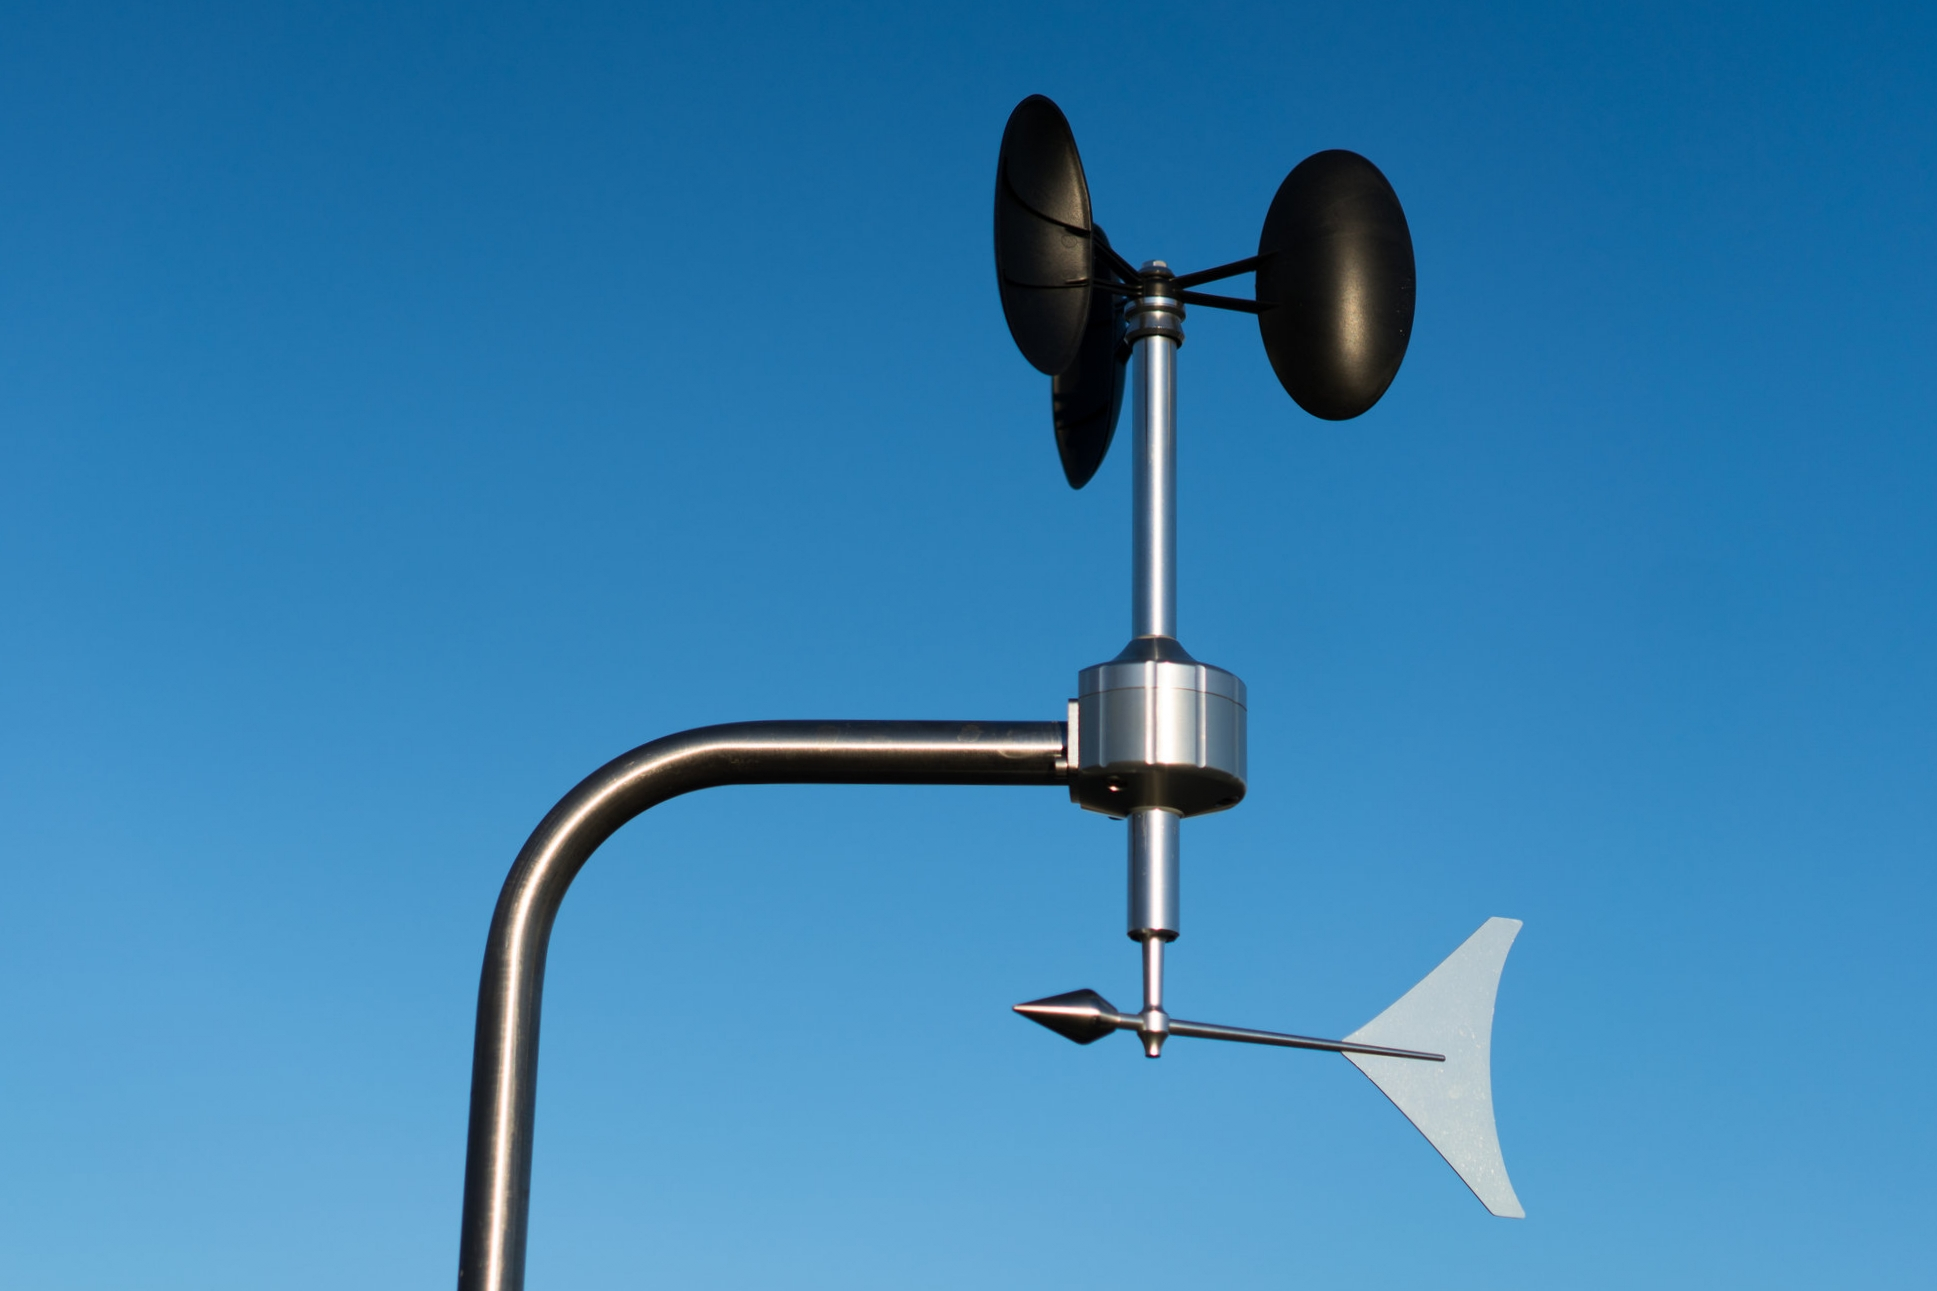 MeteoWind 2 anemometer blue sky background